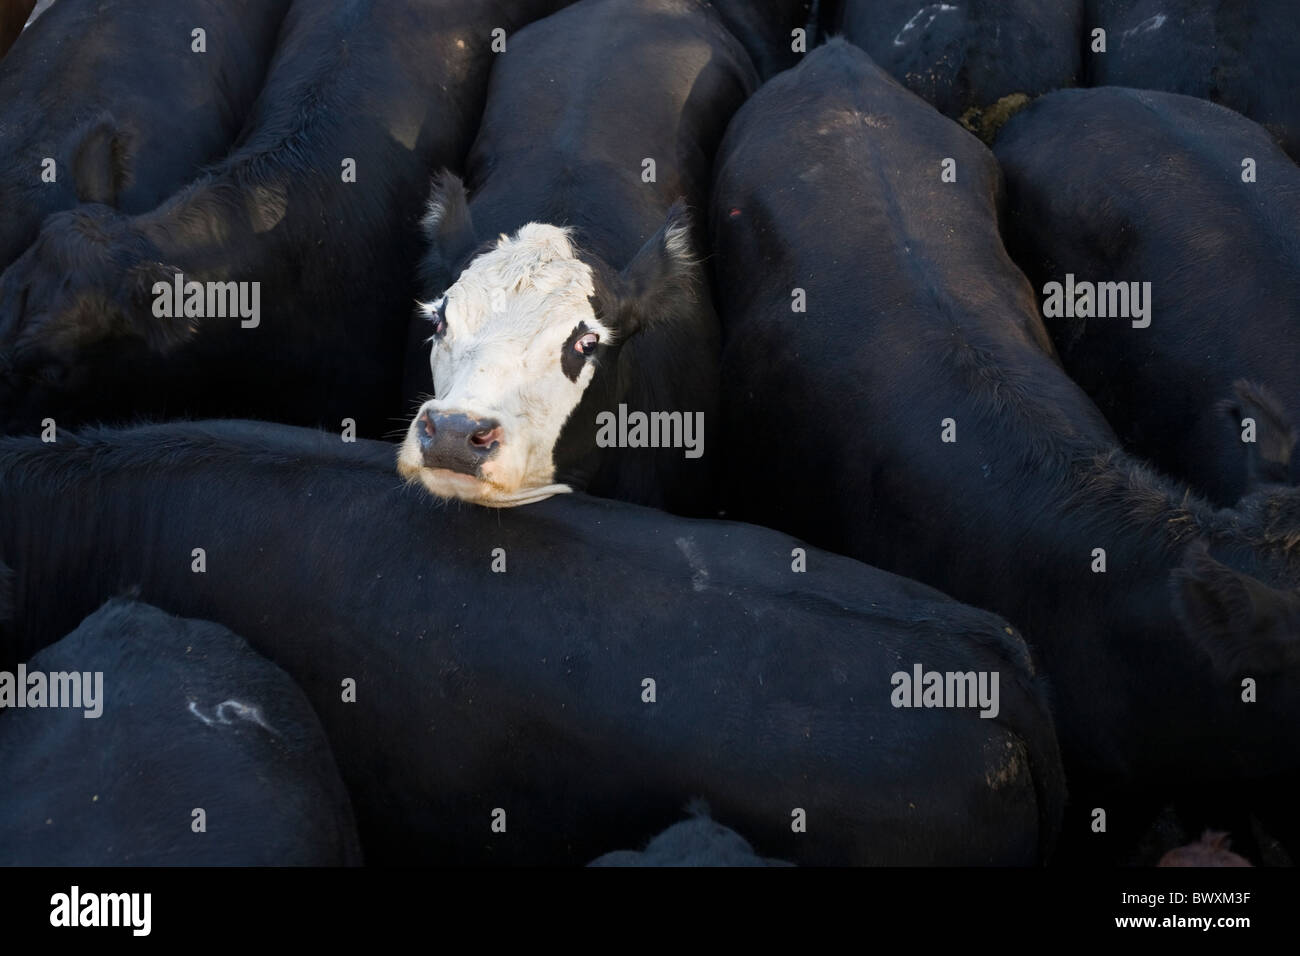 white cow face among black cow bodies - Stock Image